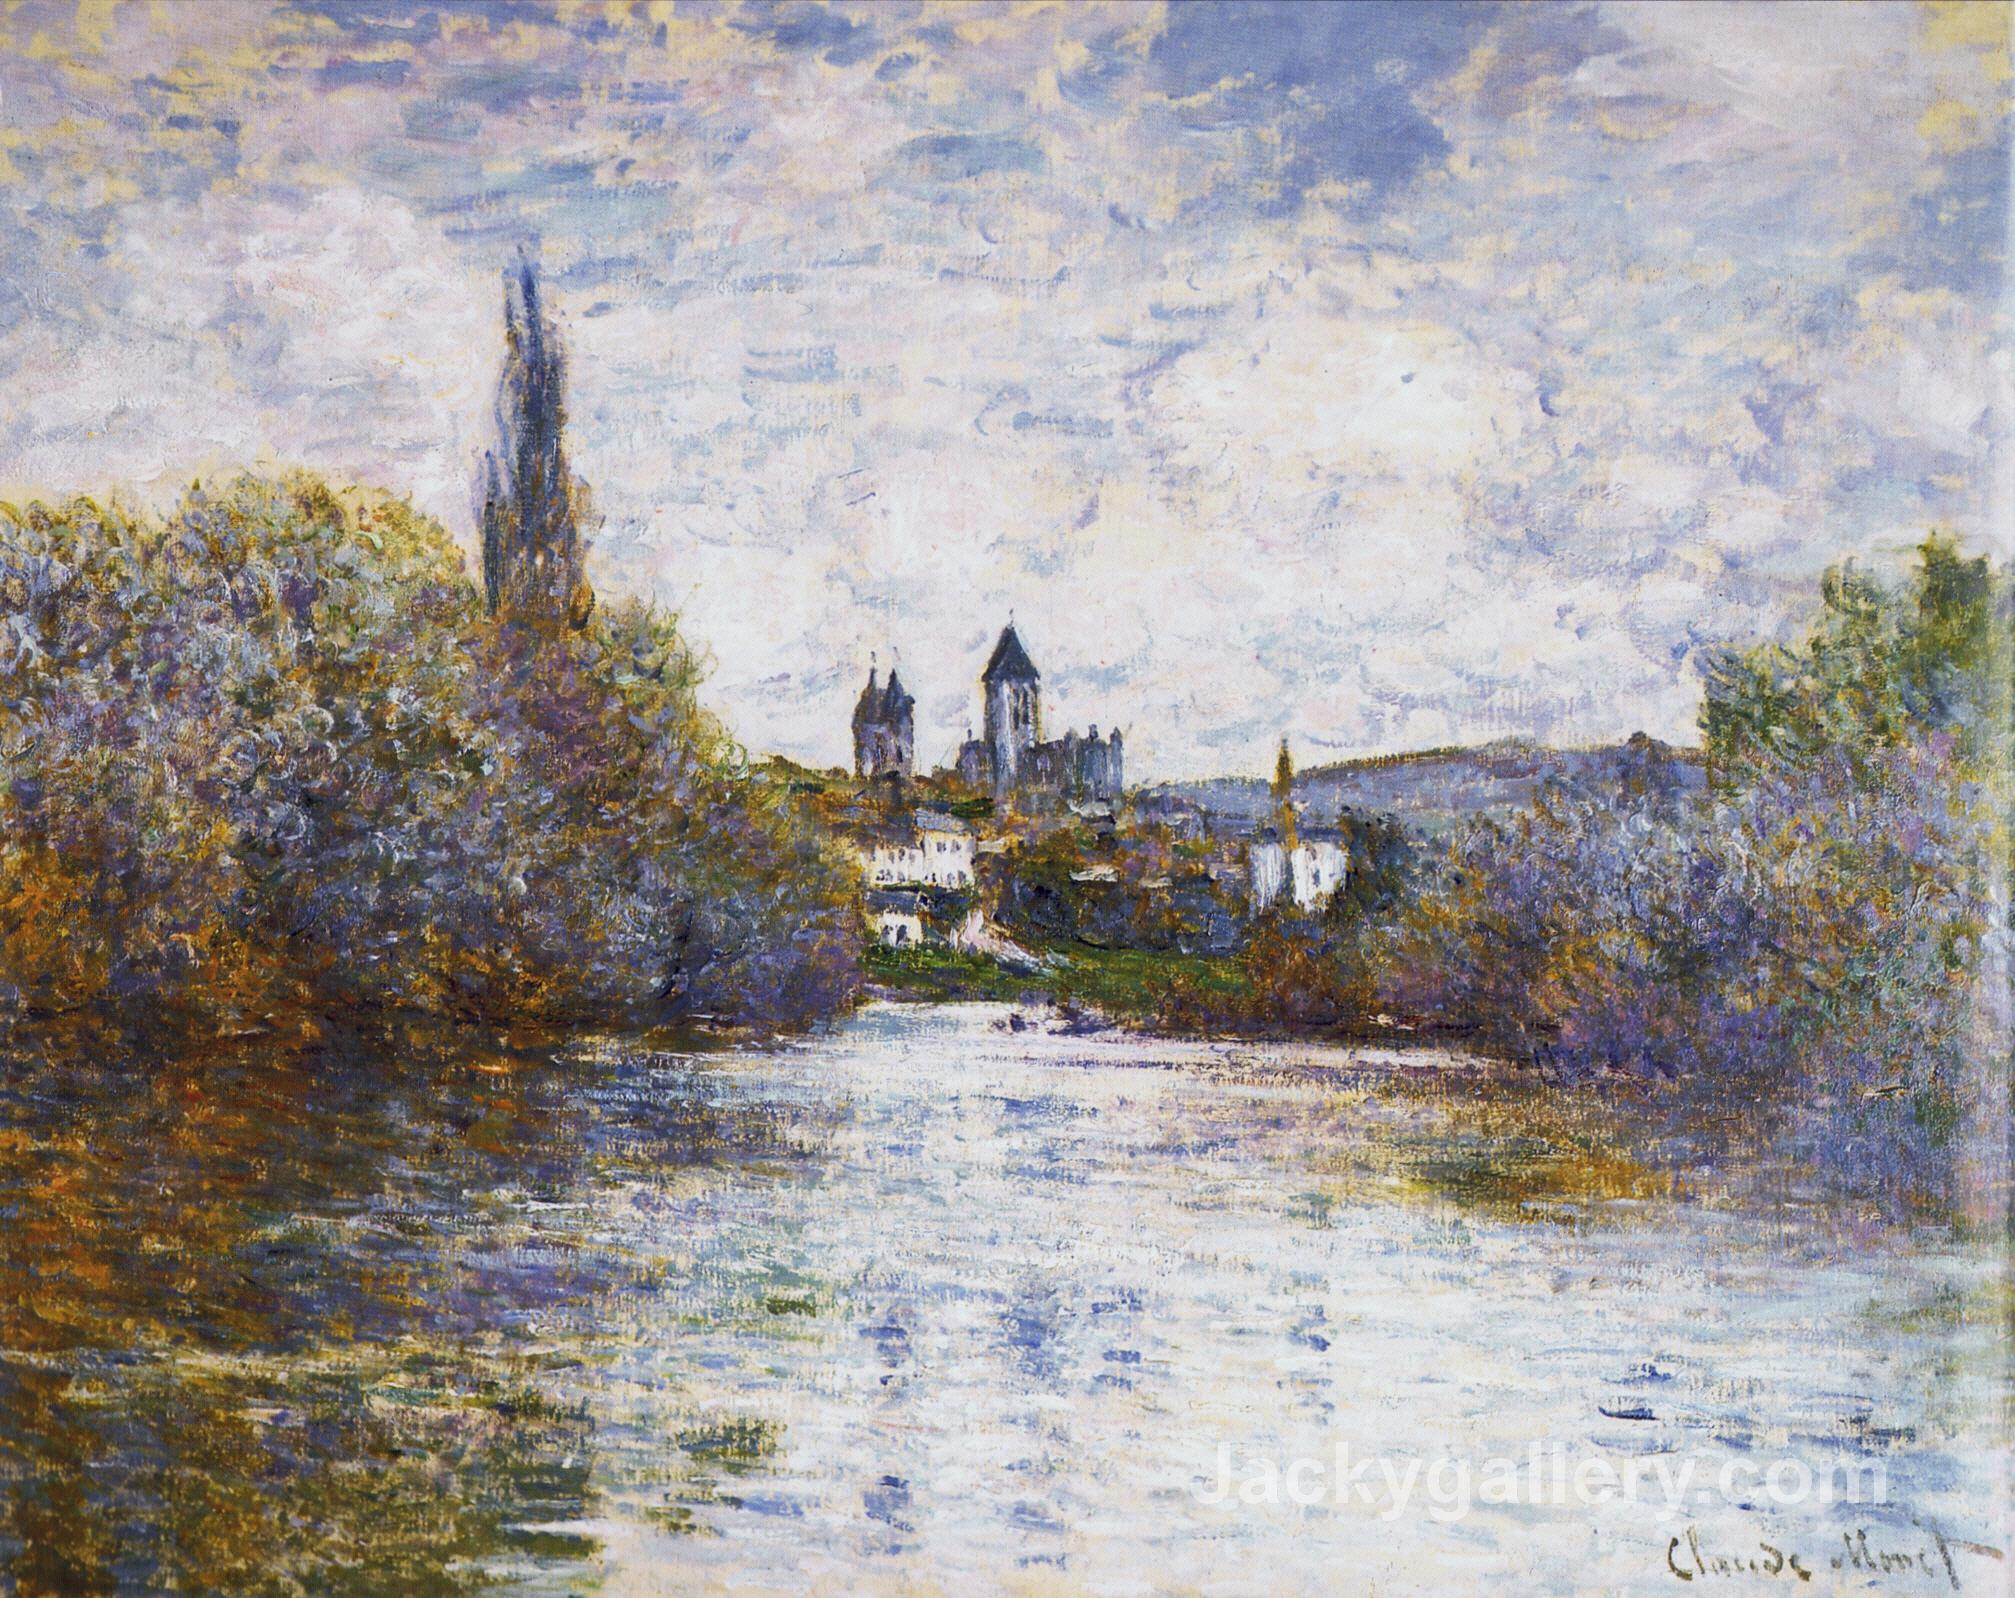 Vetheuil, The Small Arm of the Seine by Claude Monet paintings reproduction